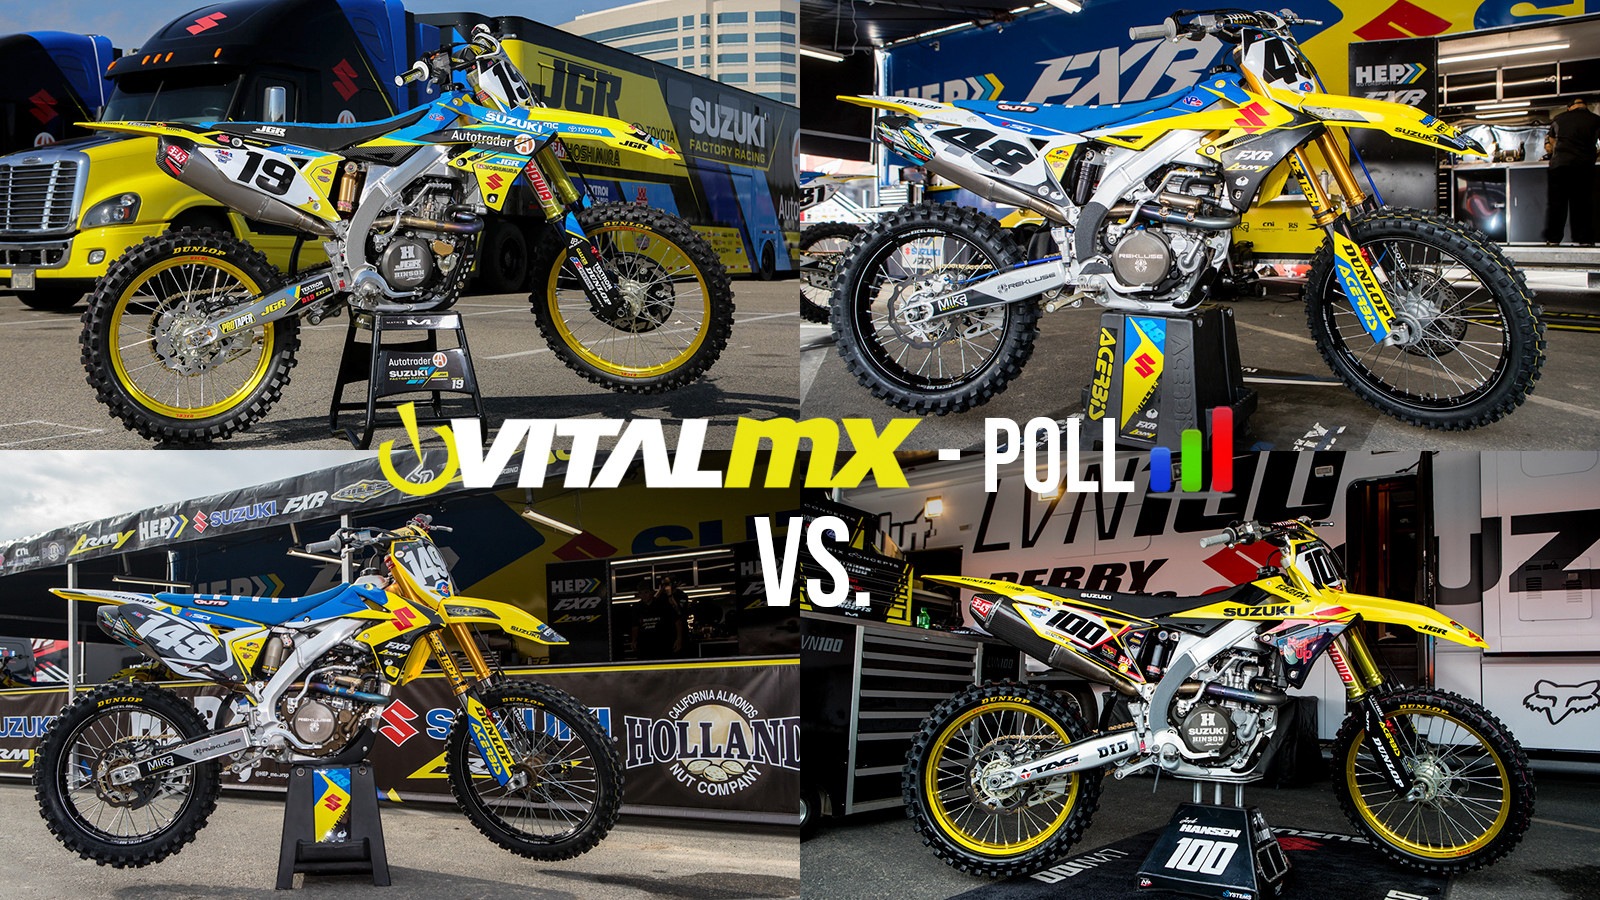 Vital MX Bike Face-Off: JGR vs LVN100 vs HEP Suzuki